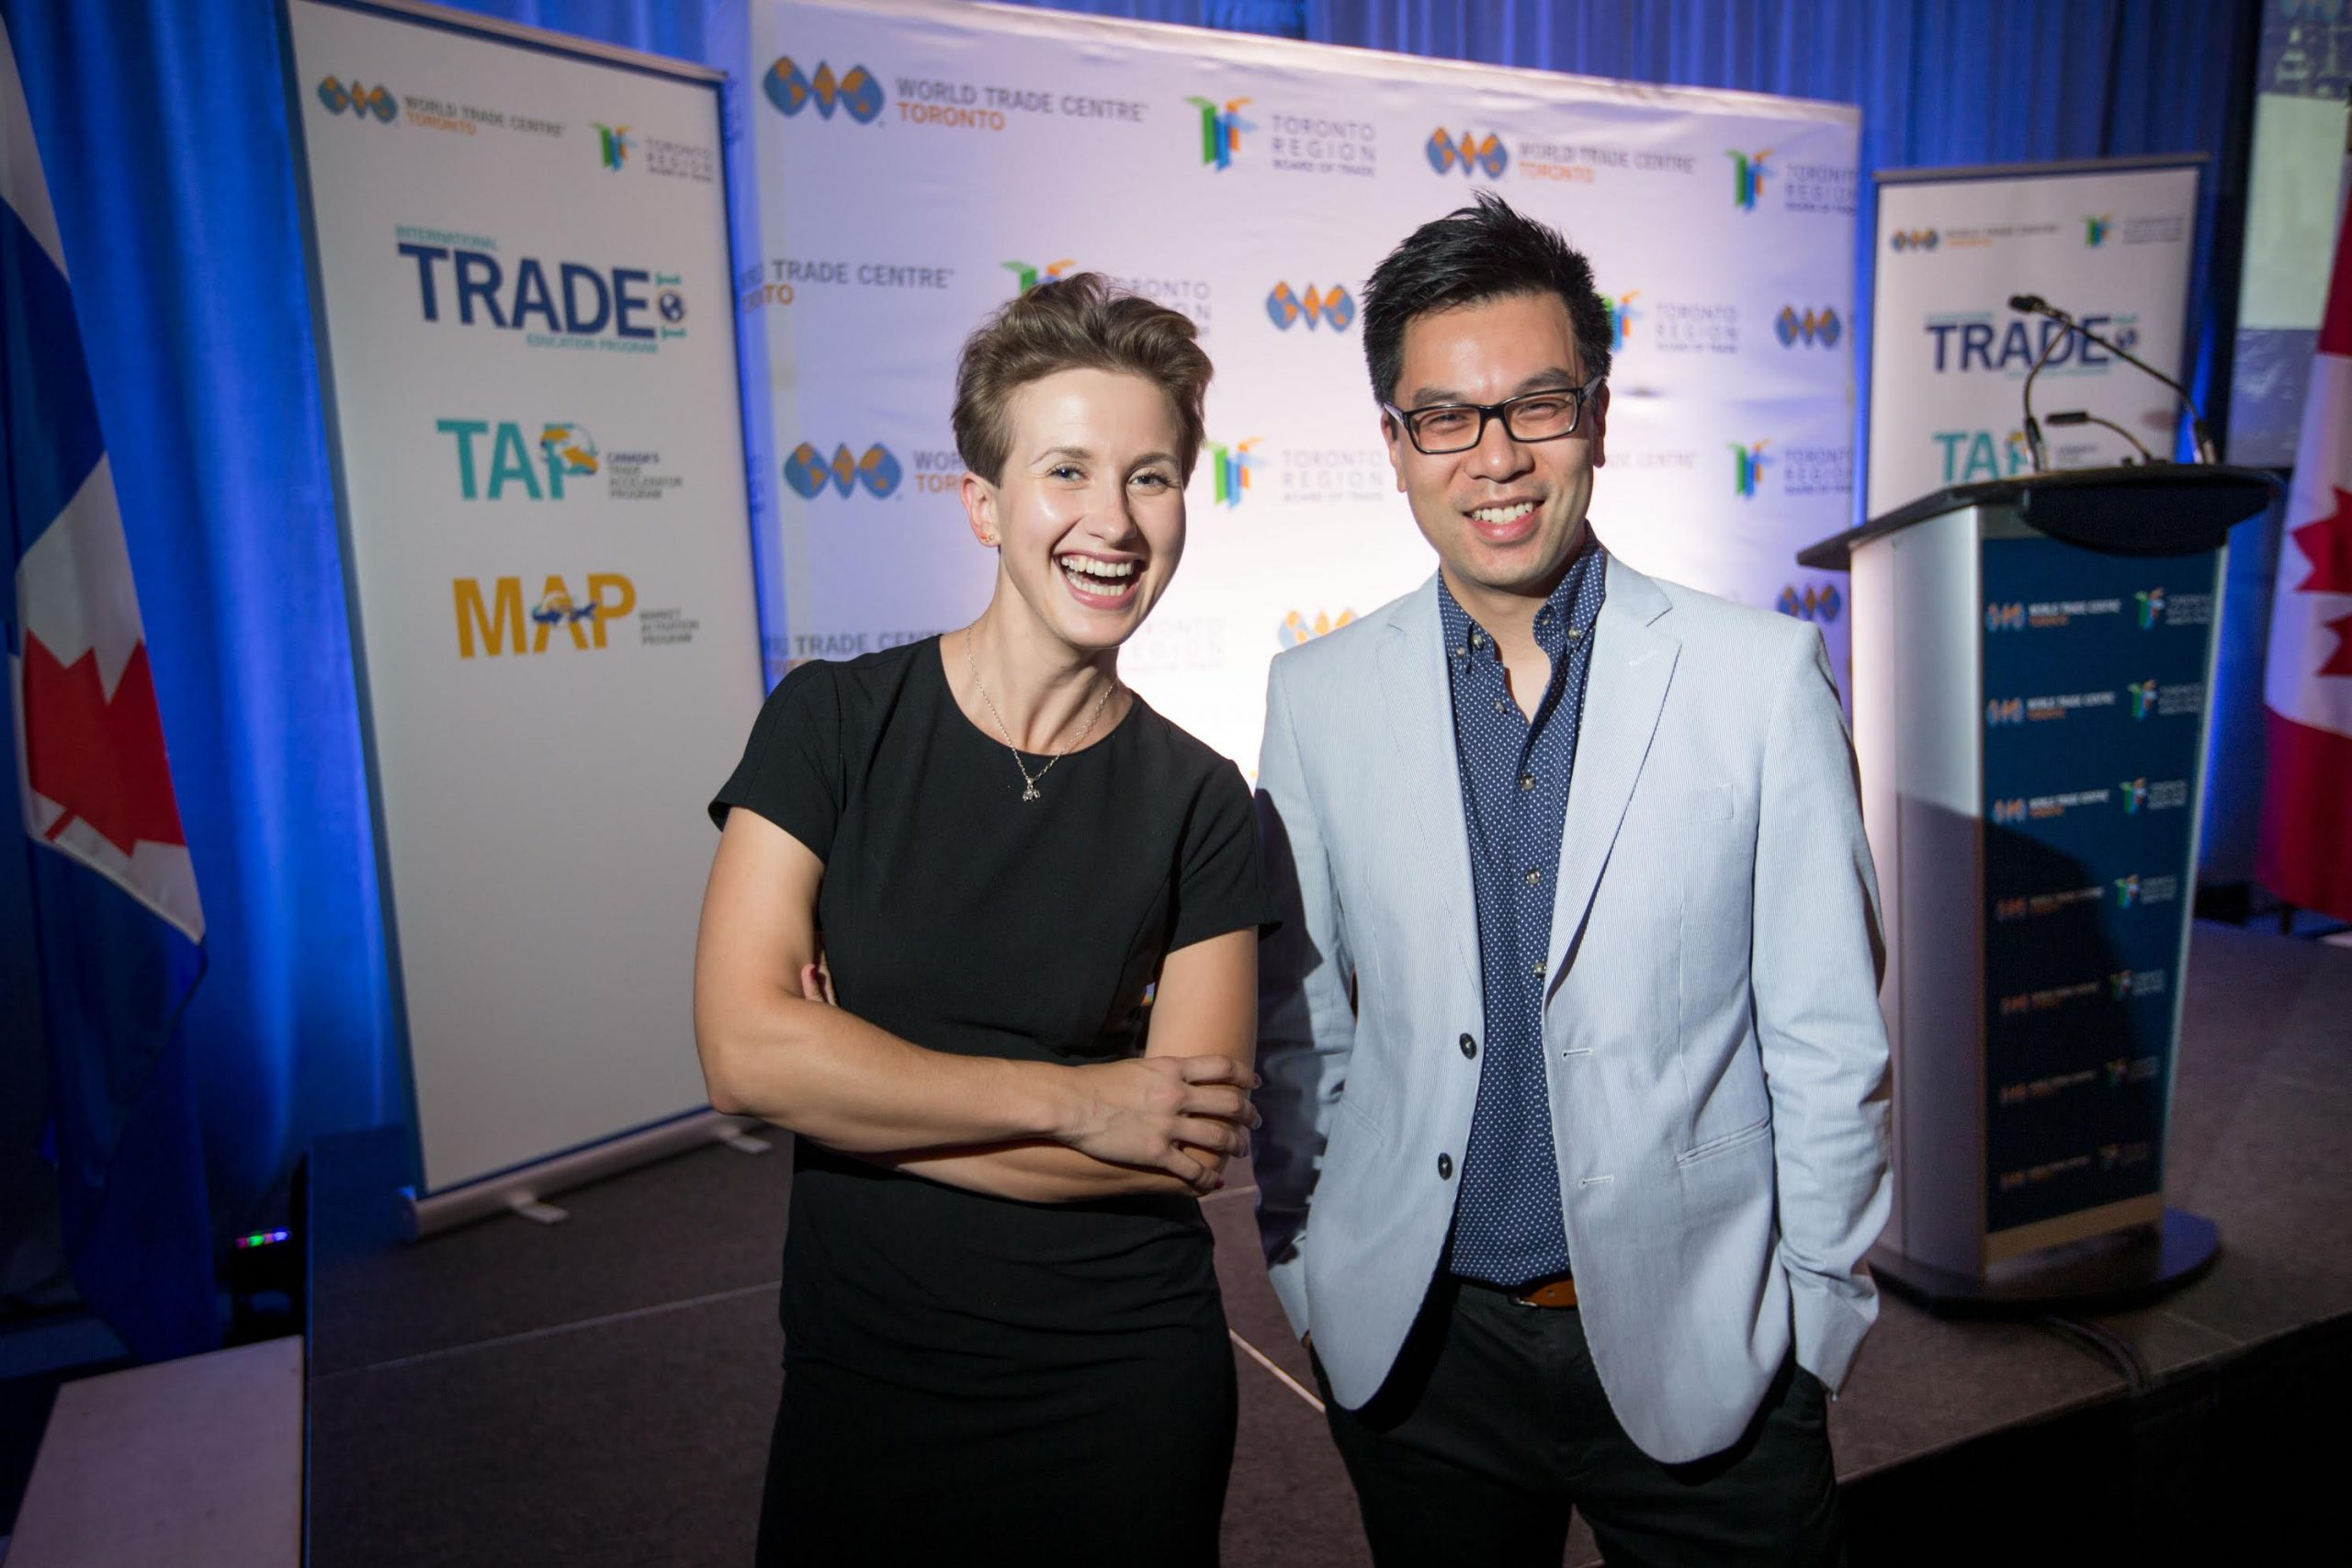 Your Path to Export Markets: Trade Accelerator Program